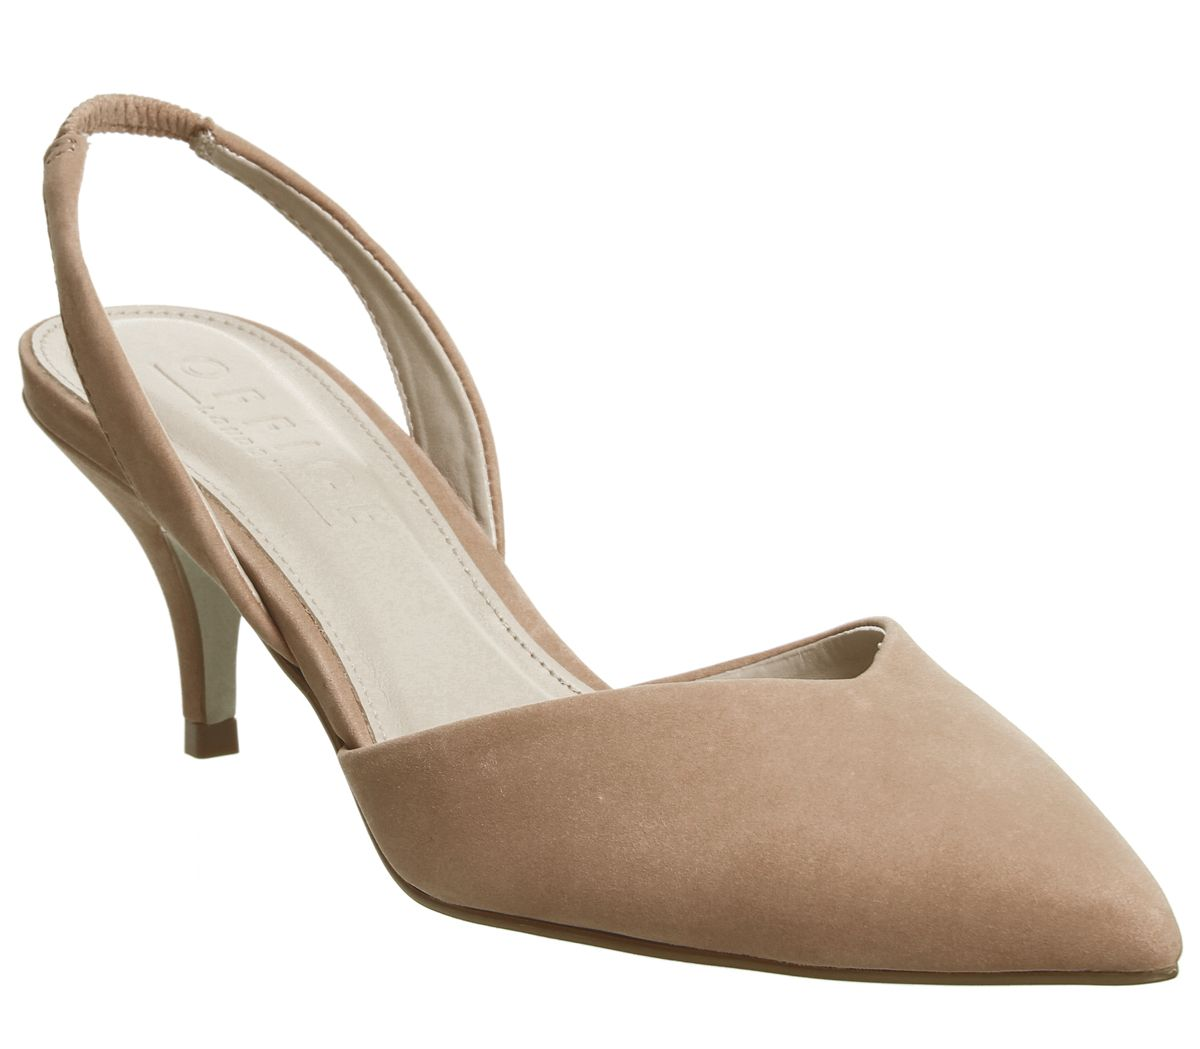 c472d76c16 Office Melon Two Part Sling Courts Nude Nubuck - Mid Heels